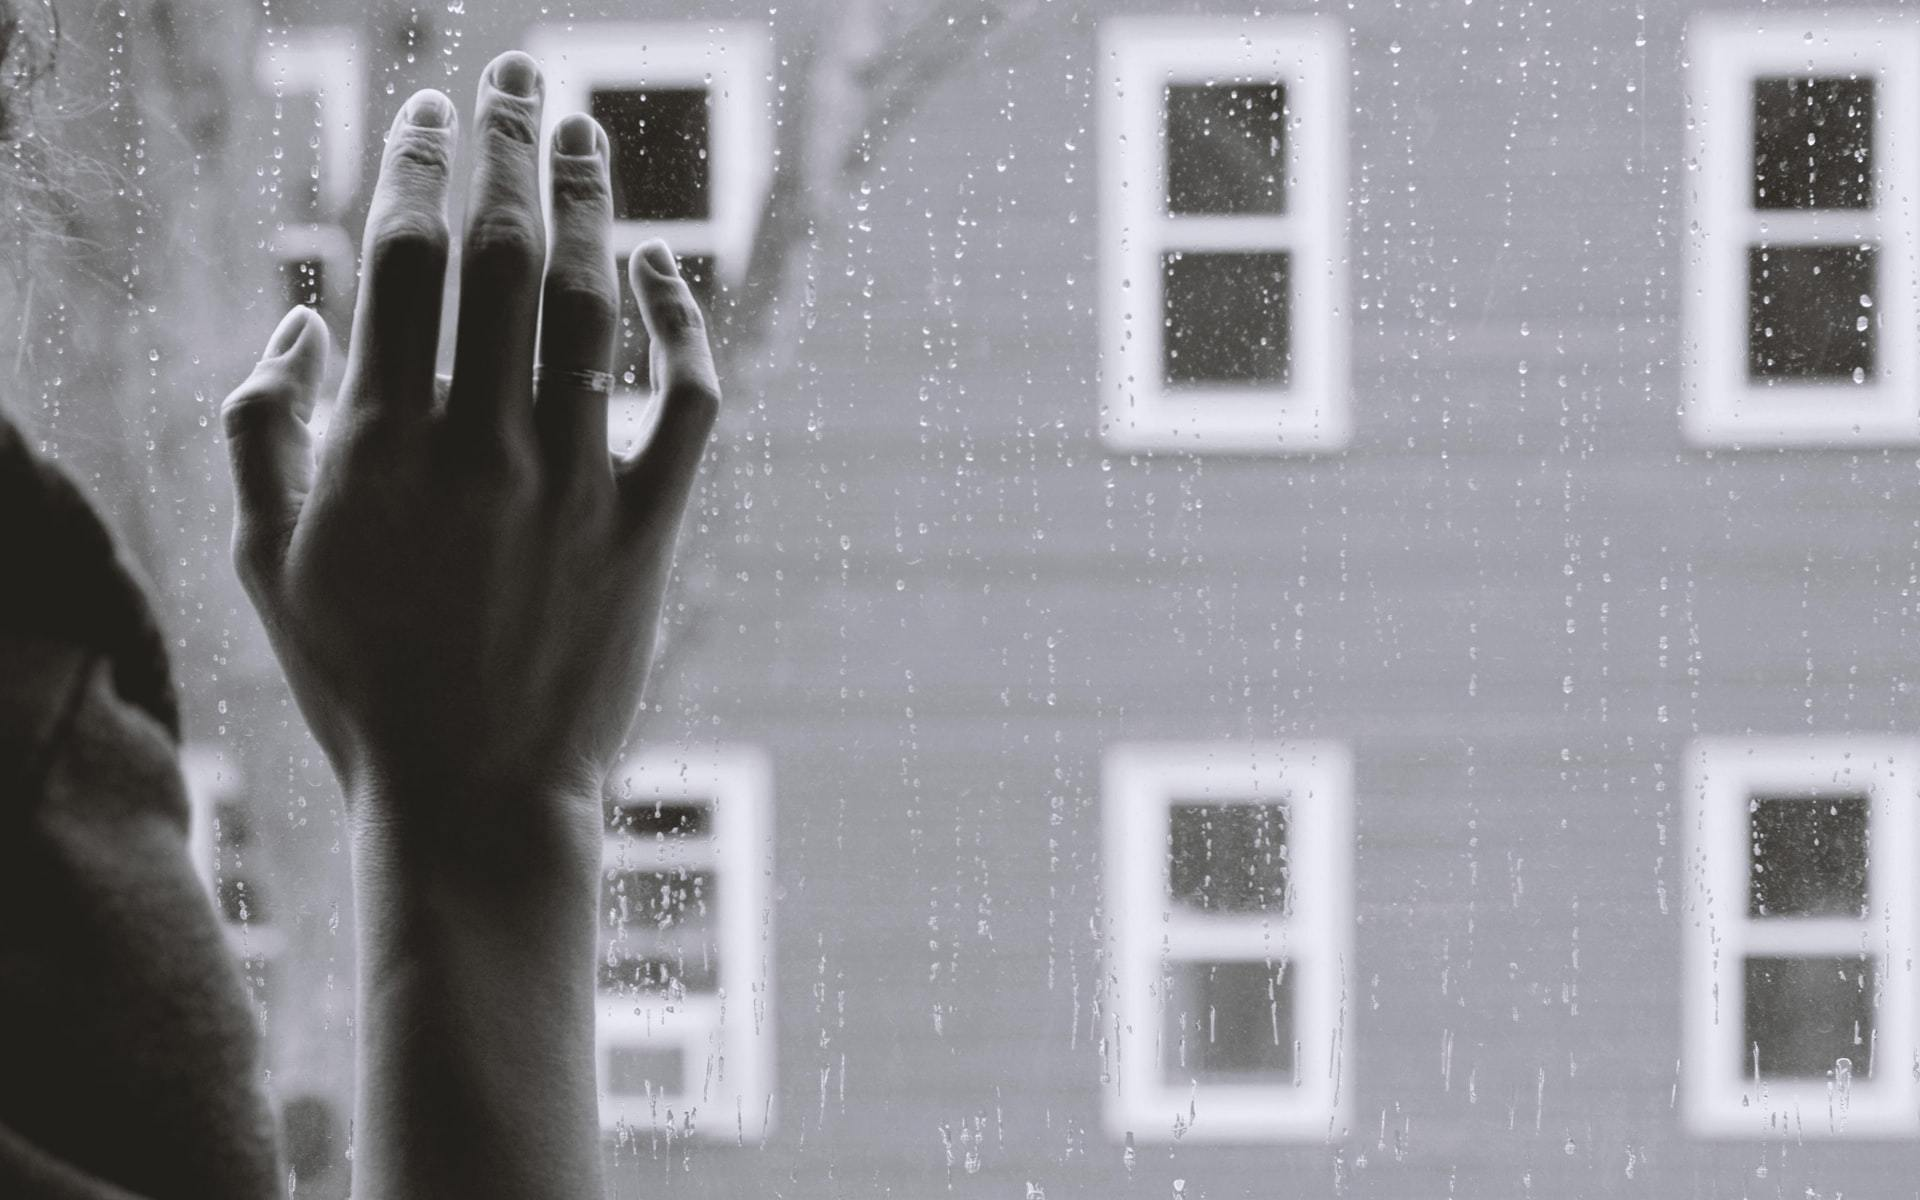 woman's hand against a window with rain outside